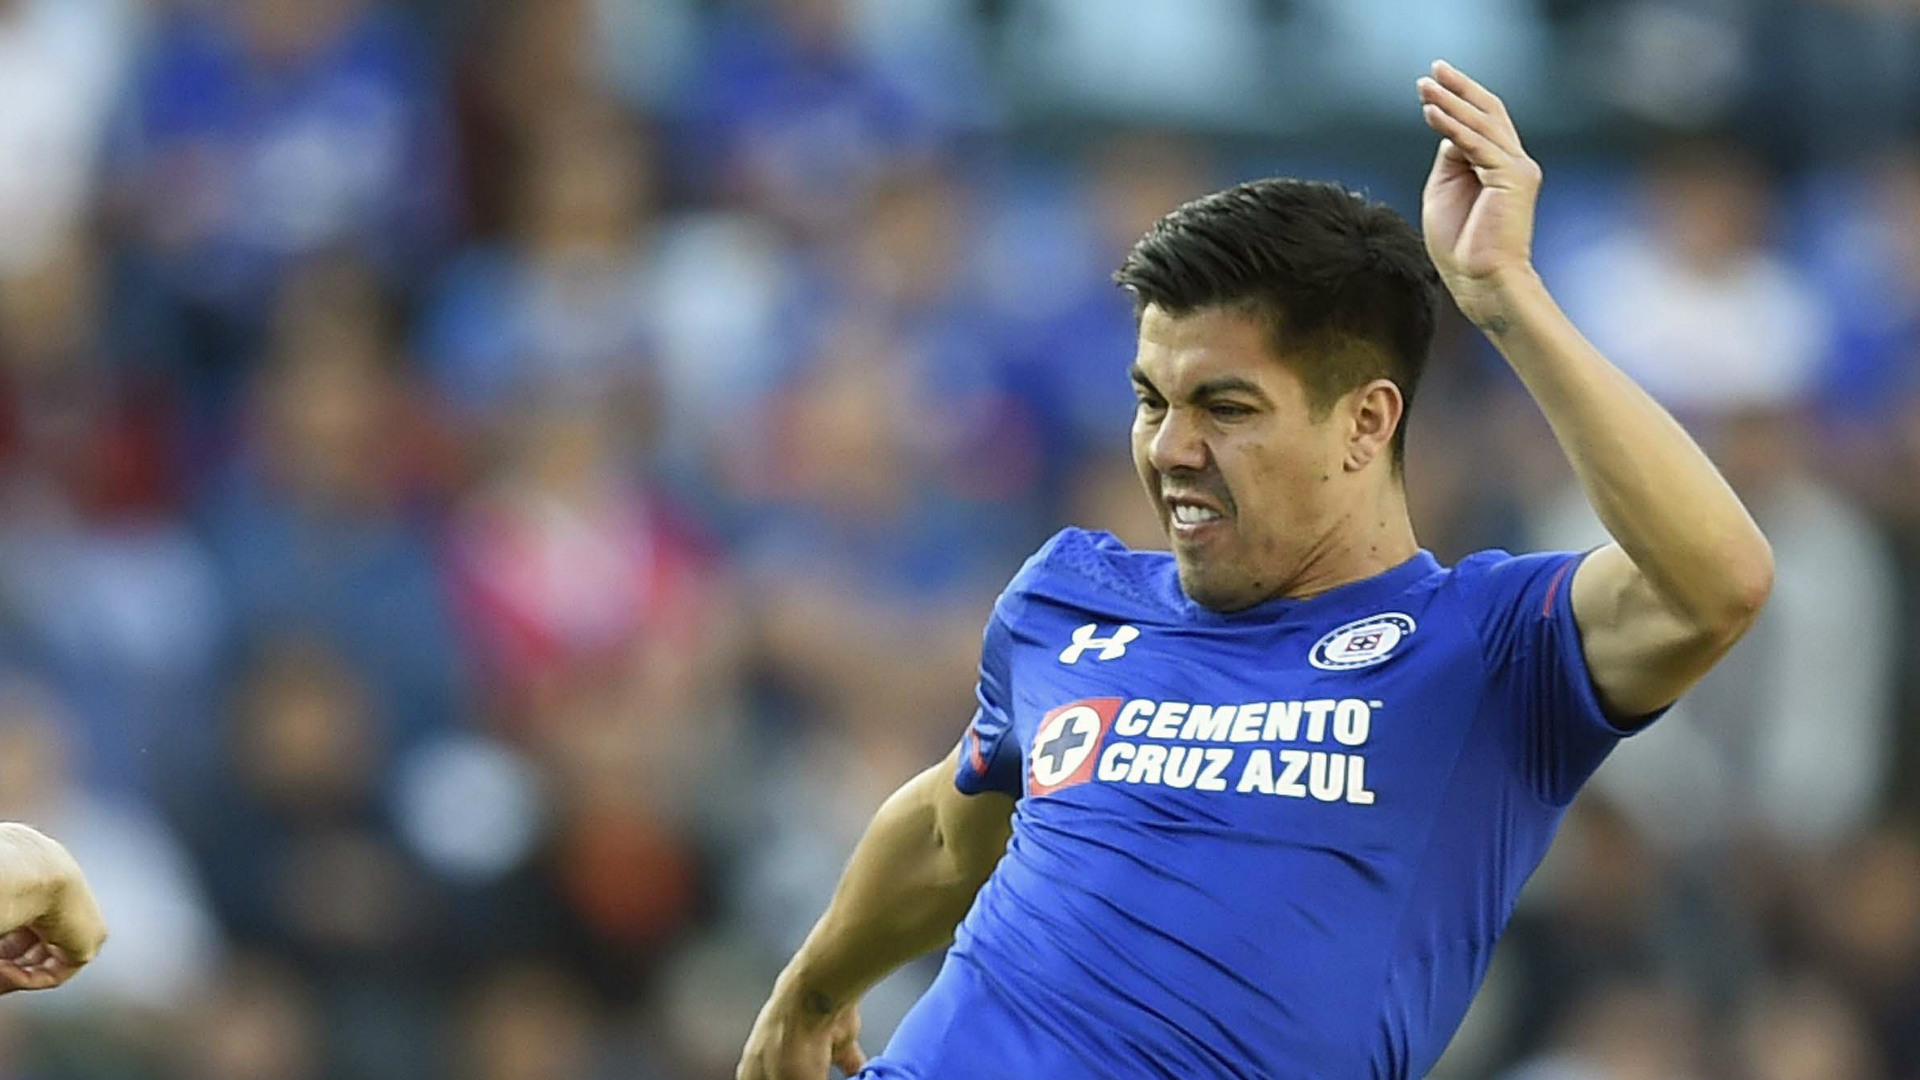 Francisco Silva Cruz Azul